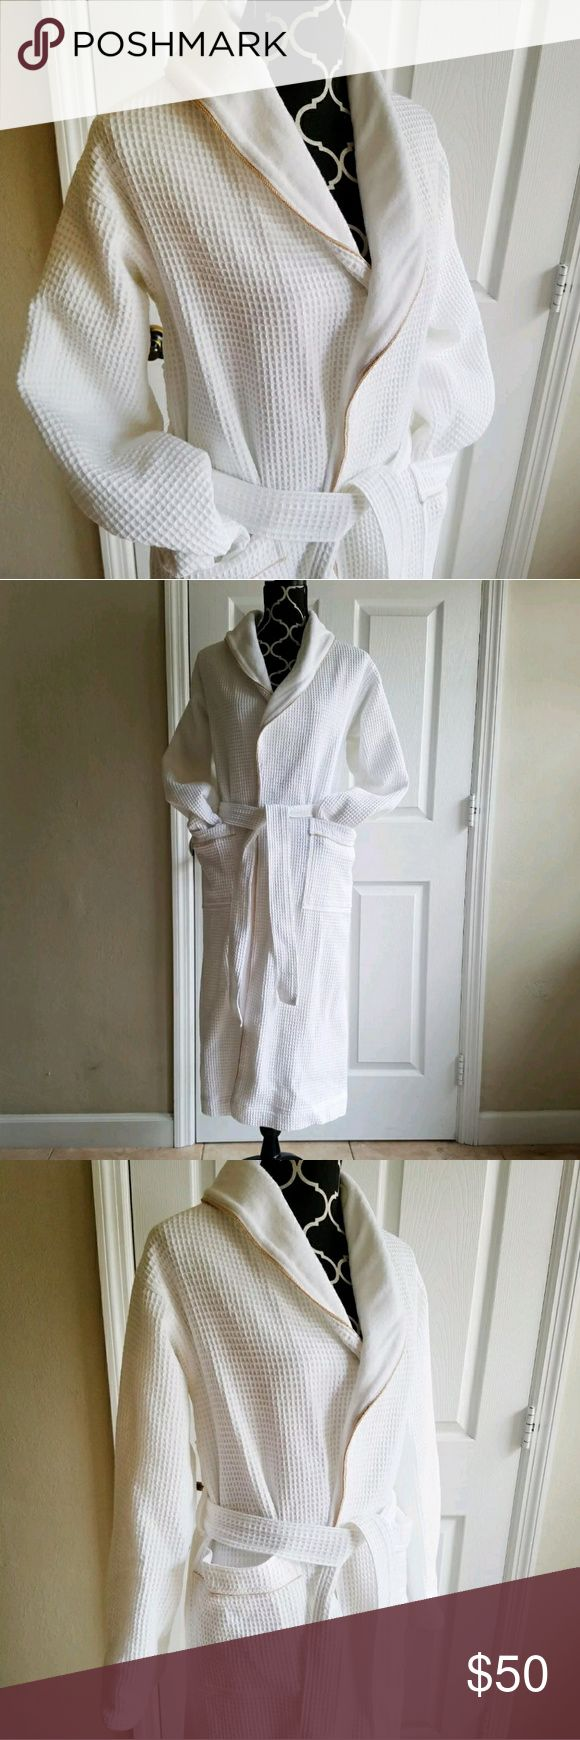 Banana Republic bath robe size XS/S Bathrobe from Banana Republic, white and textured with a terry cloth lining - ir is in good used condition, has recently been cleaned and has no rips, stains, tears or odors.?It has two front pockets and a sash to tie it closed. The pockets and the front opening are both lined with a gold colored accent.?  Measurements are:  Total length: 43 inches  The outside sleeve (from shoulder to wrist) is 23 inches The inside sleeve (from underarm to wrist) is 20…